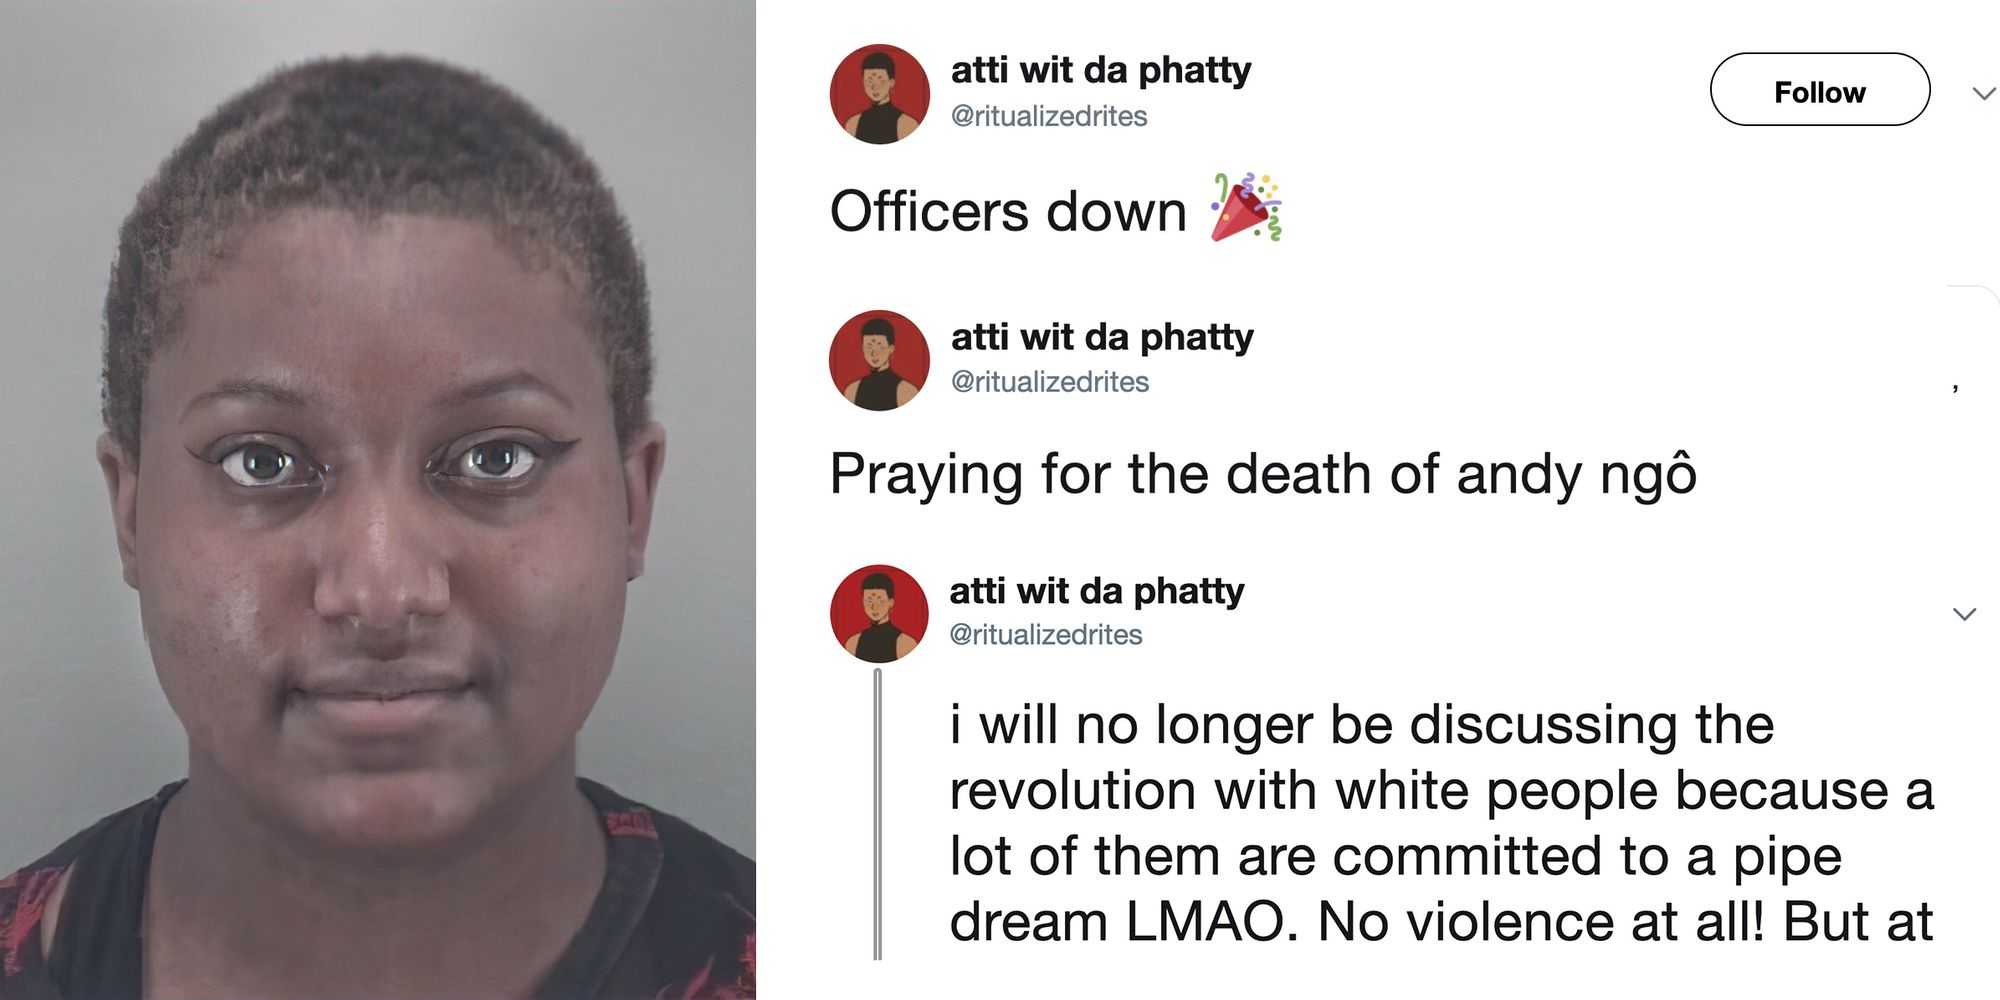 VCU student activist celebrates the shooting deaths of police officers, 'prays' for the death of Andy Ngo